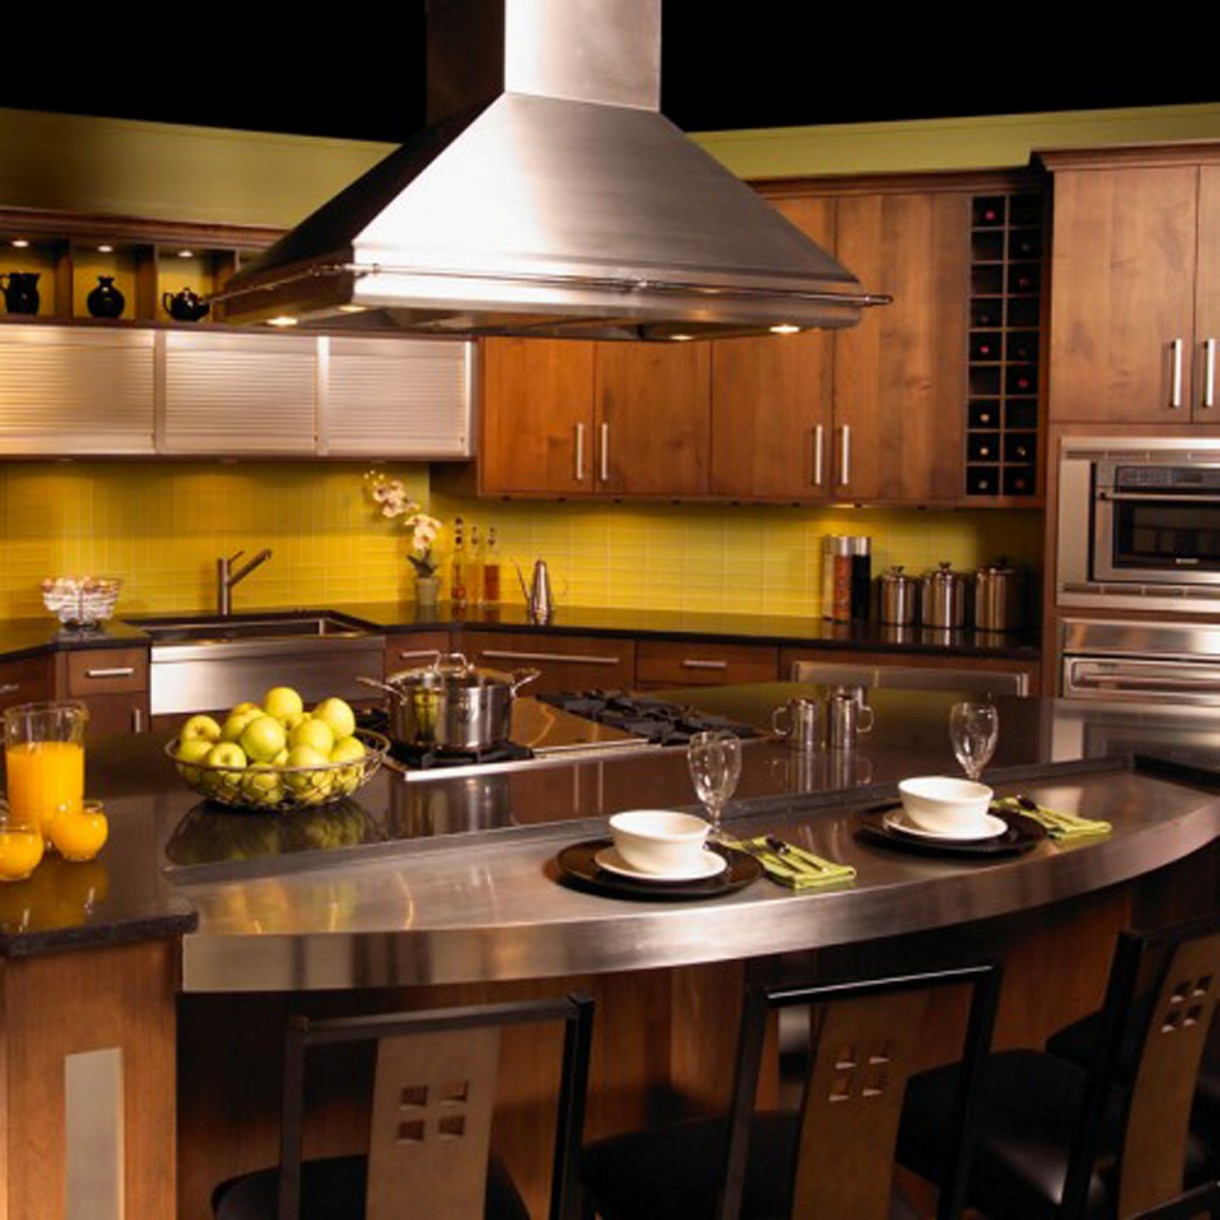 35 Kitchen Ideas Decor And Decorating Ideas For Kitchen: 21 Marvelous Italian Kitchen Decor Ideas